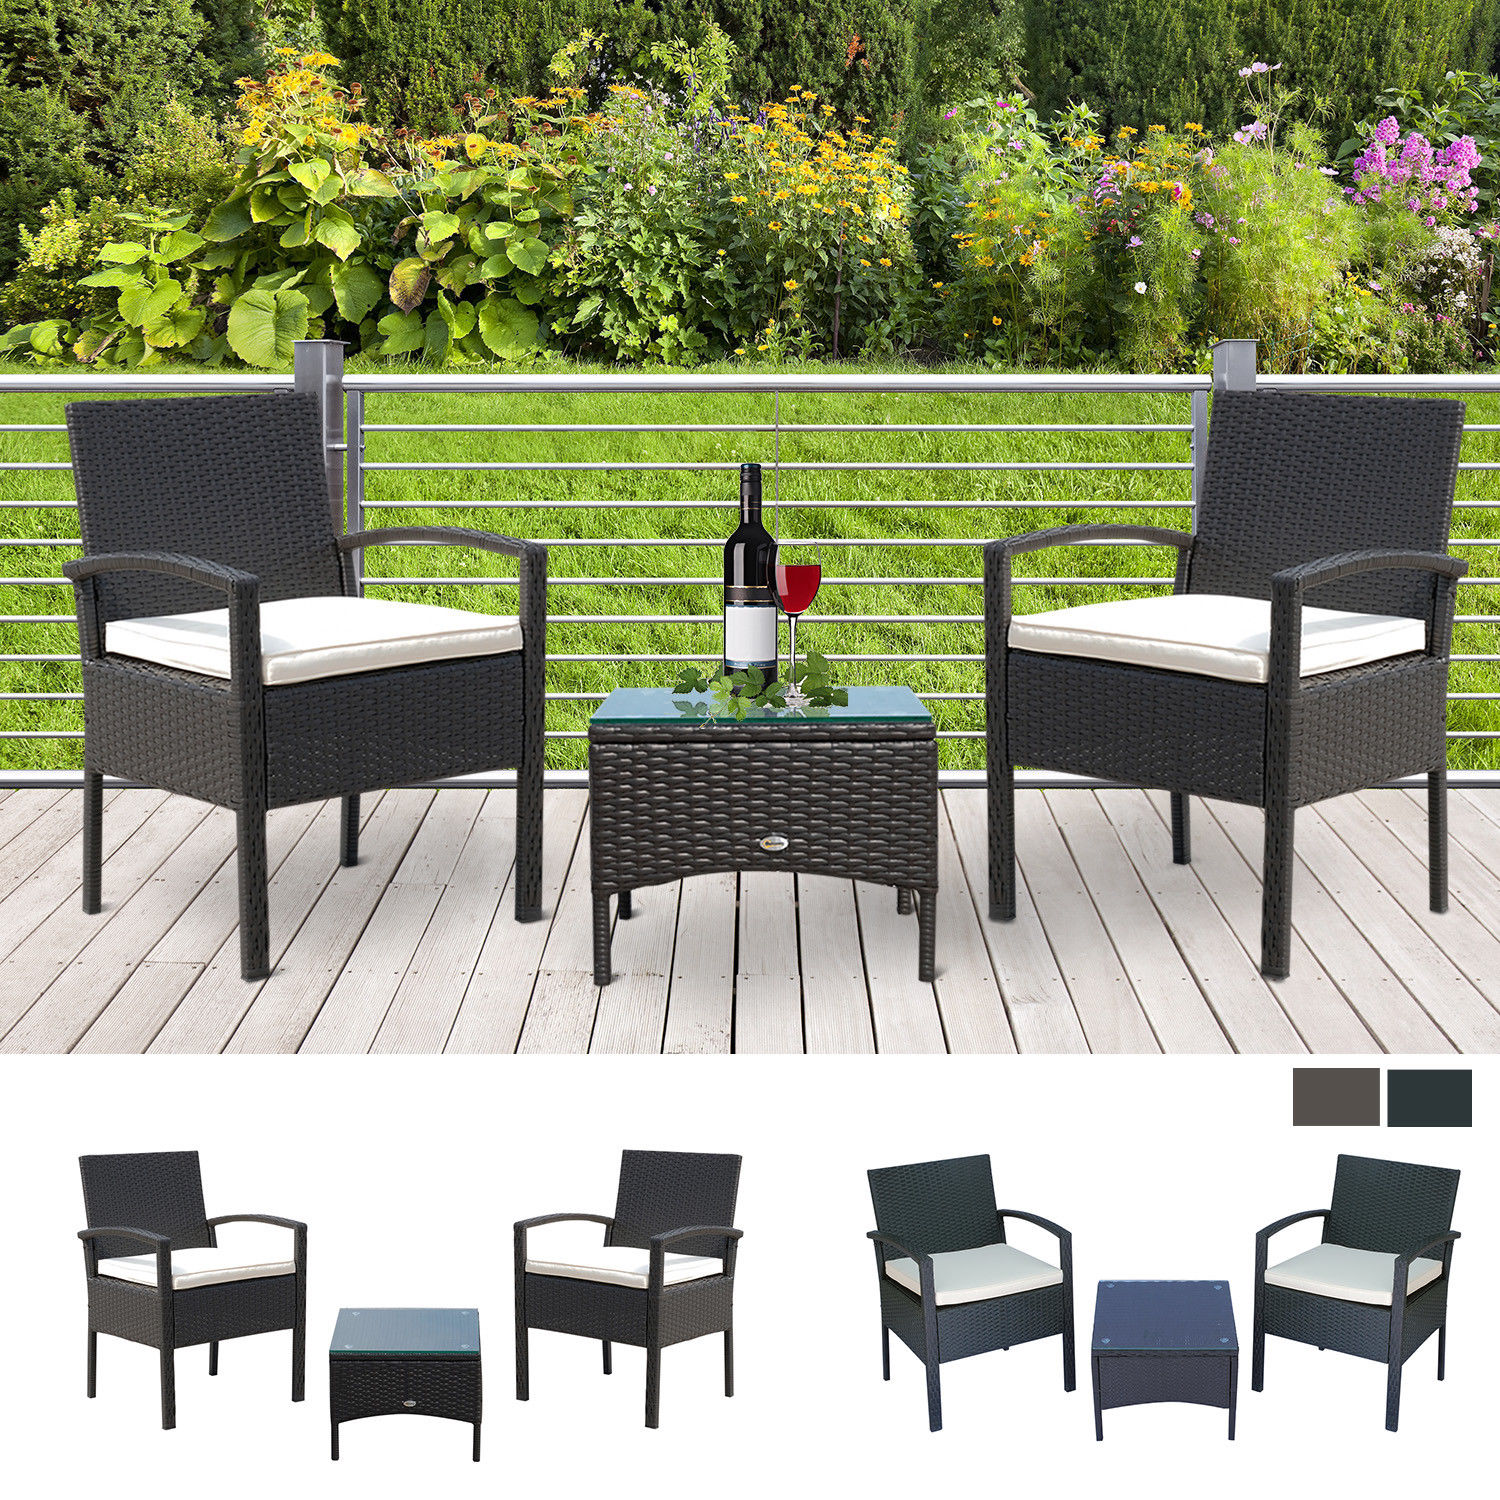 three Objects Rattan Set Furnishings Garden Cushion Bistro Wicker Black Brown Patio